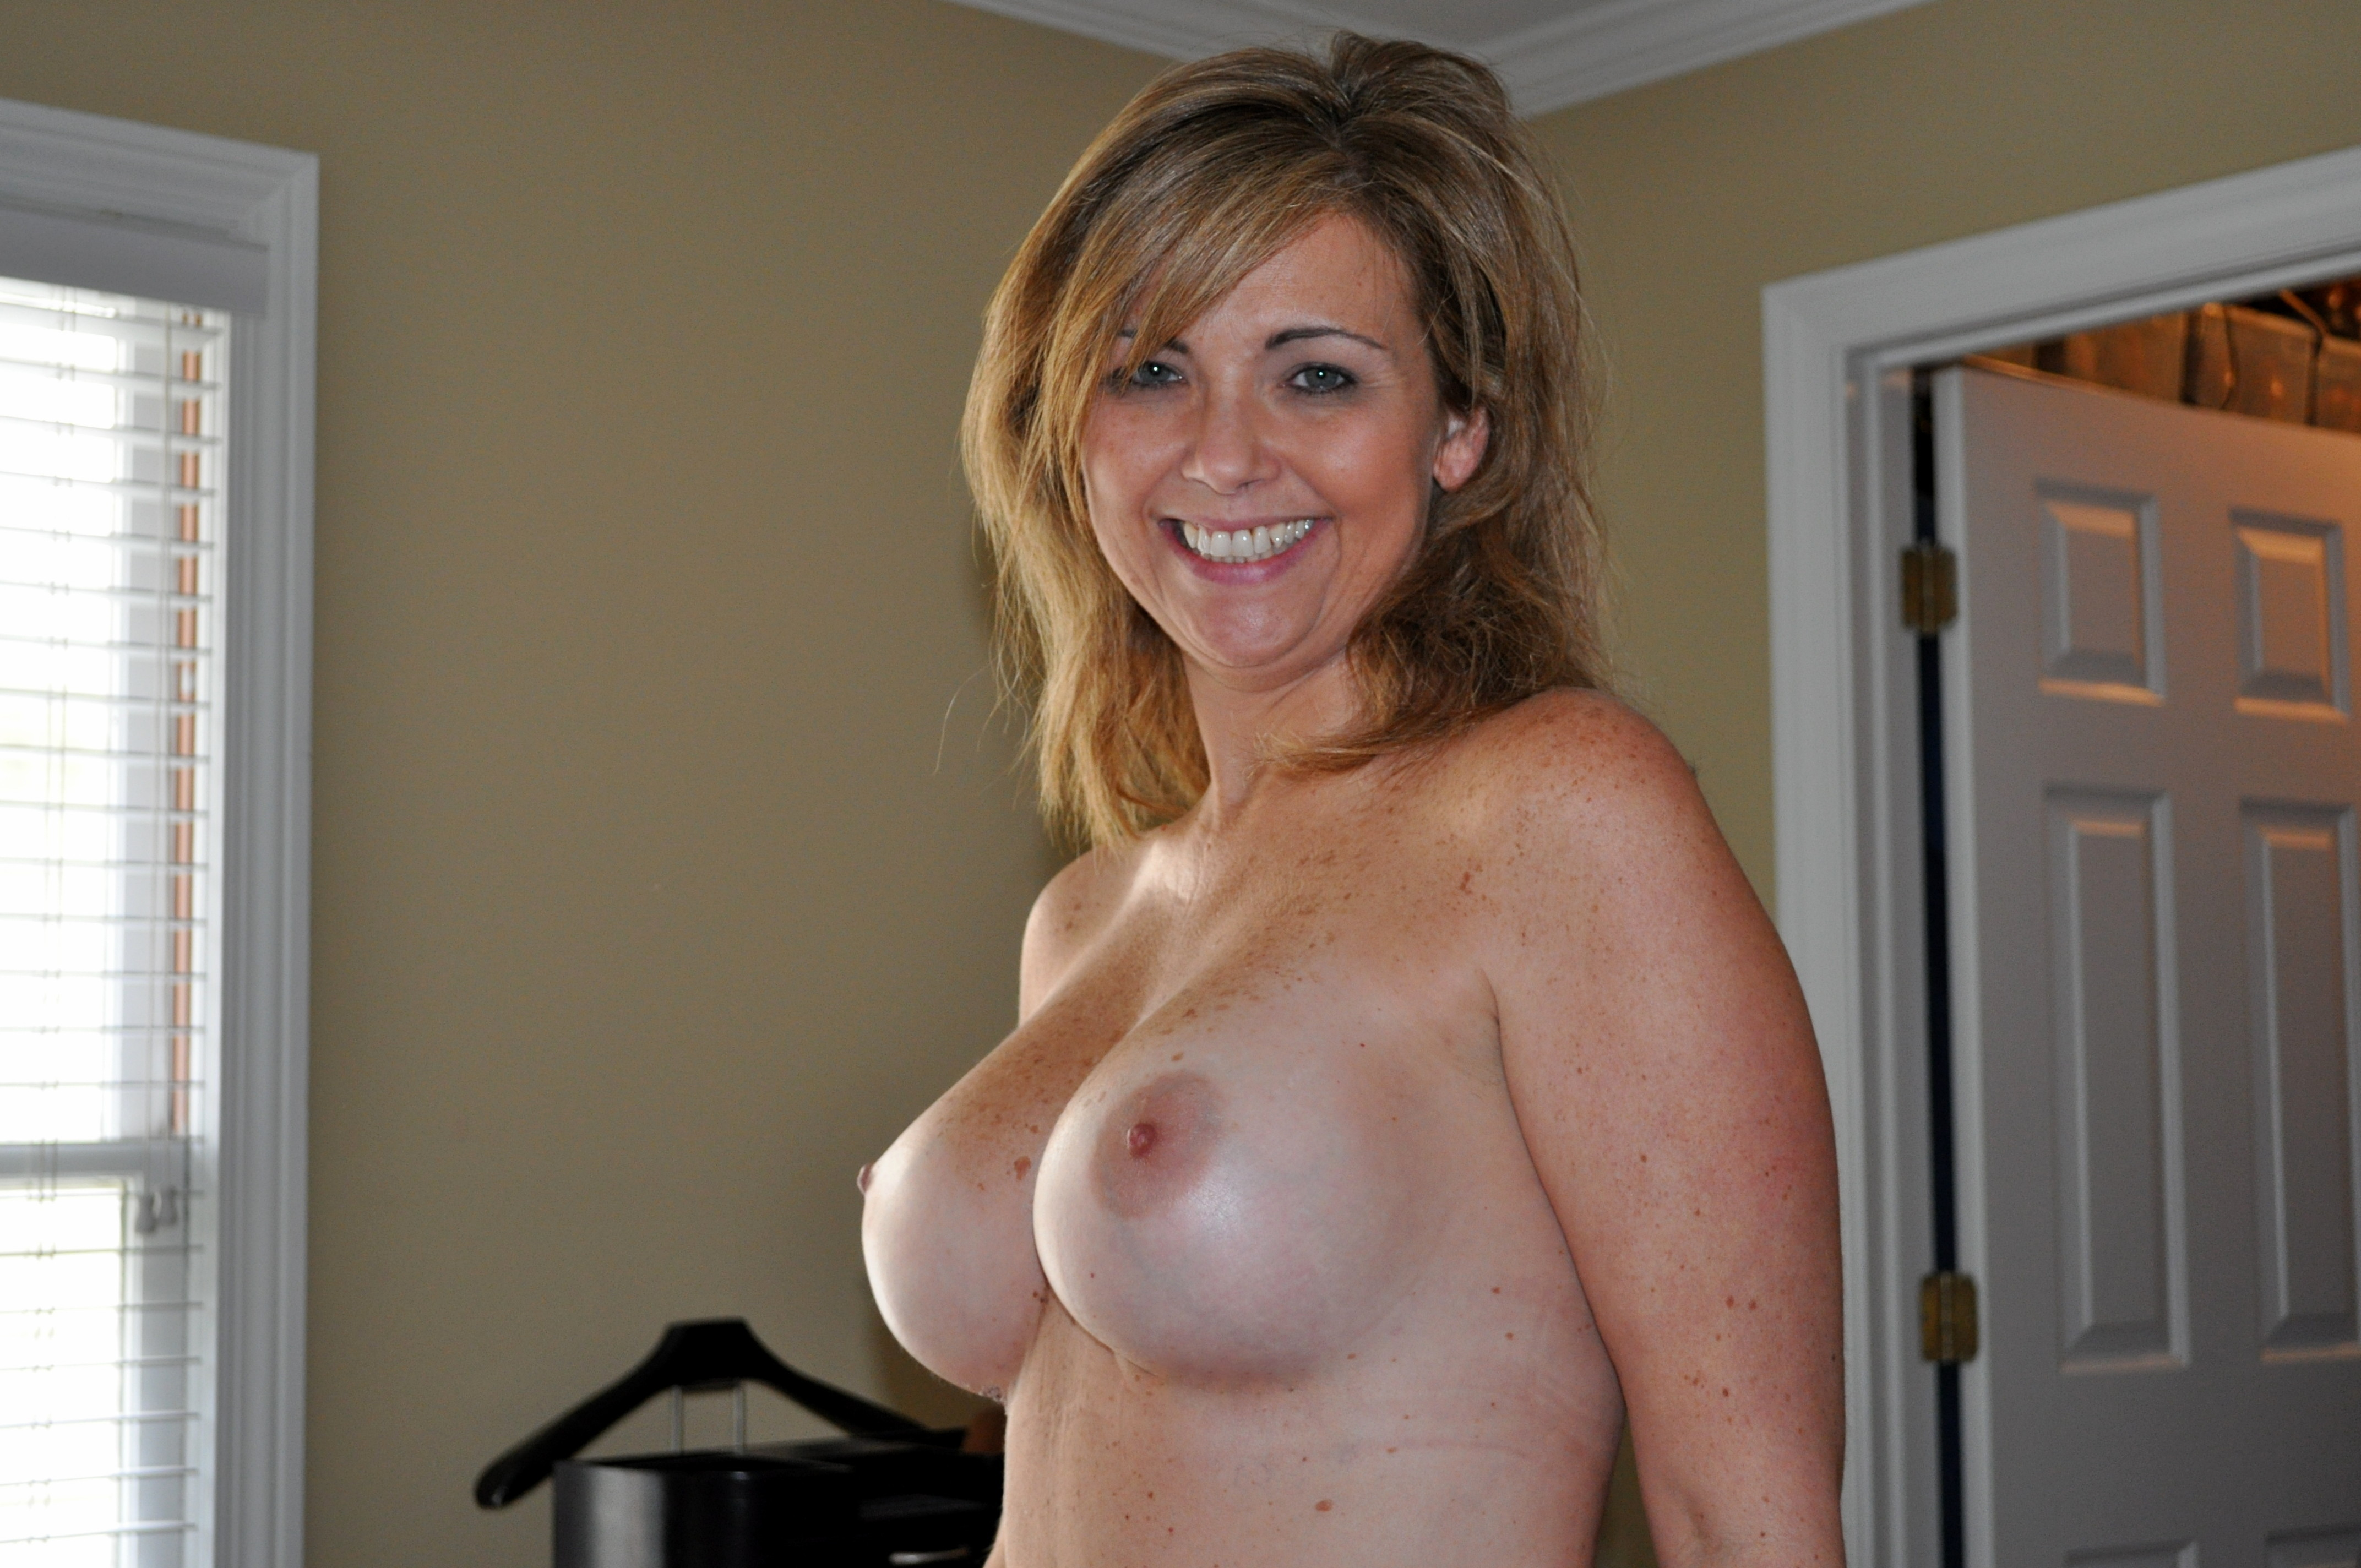 Nude wife with freckles, blondie and tamara fuck pictures austin